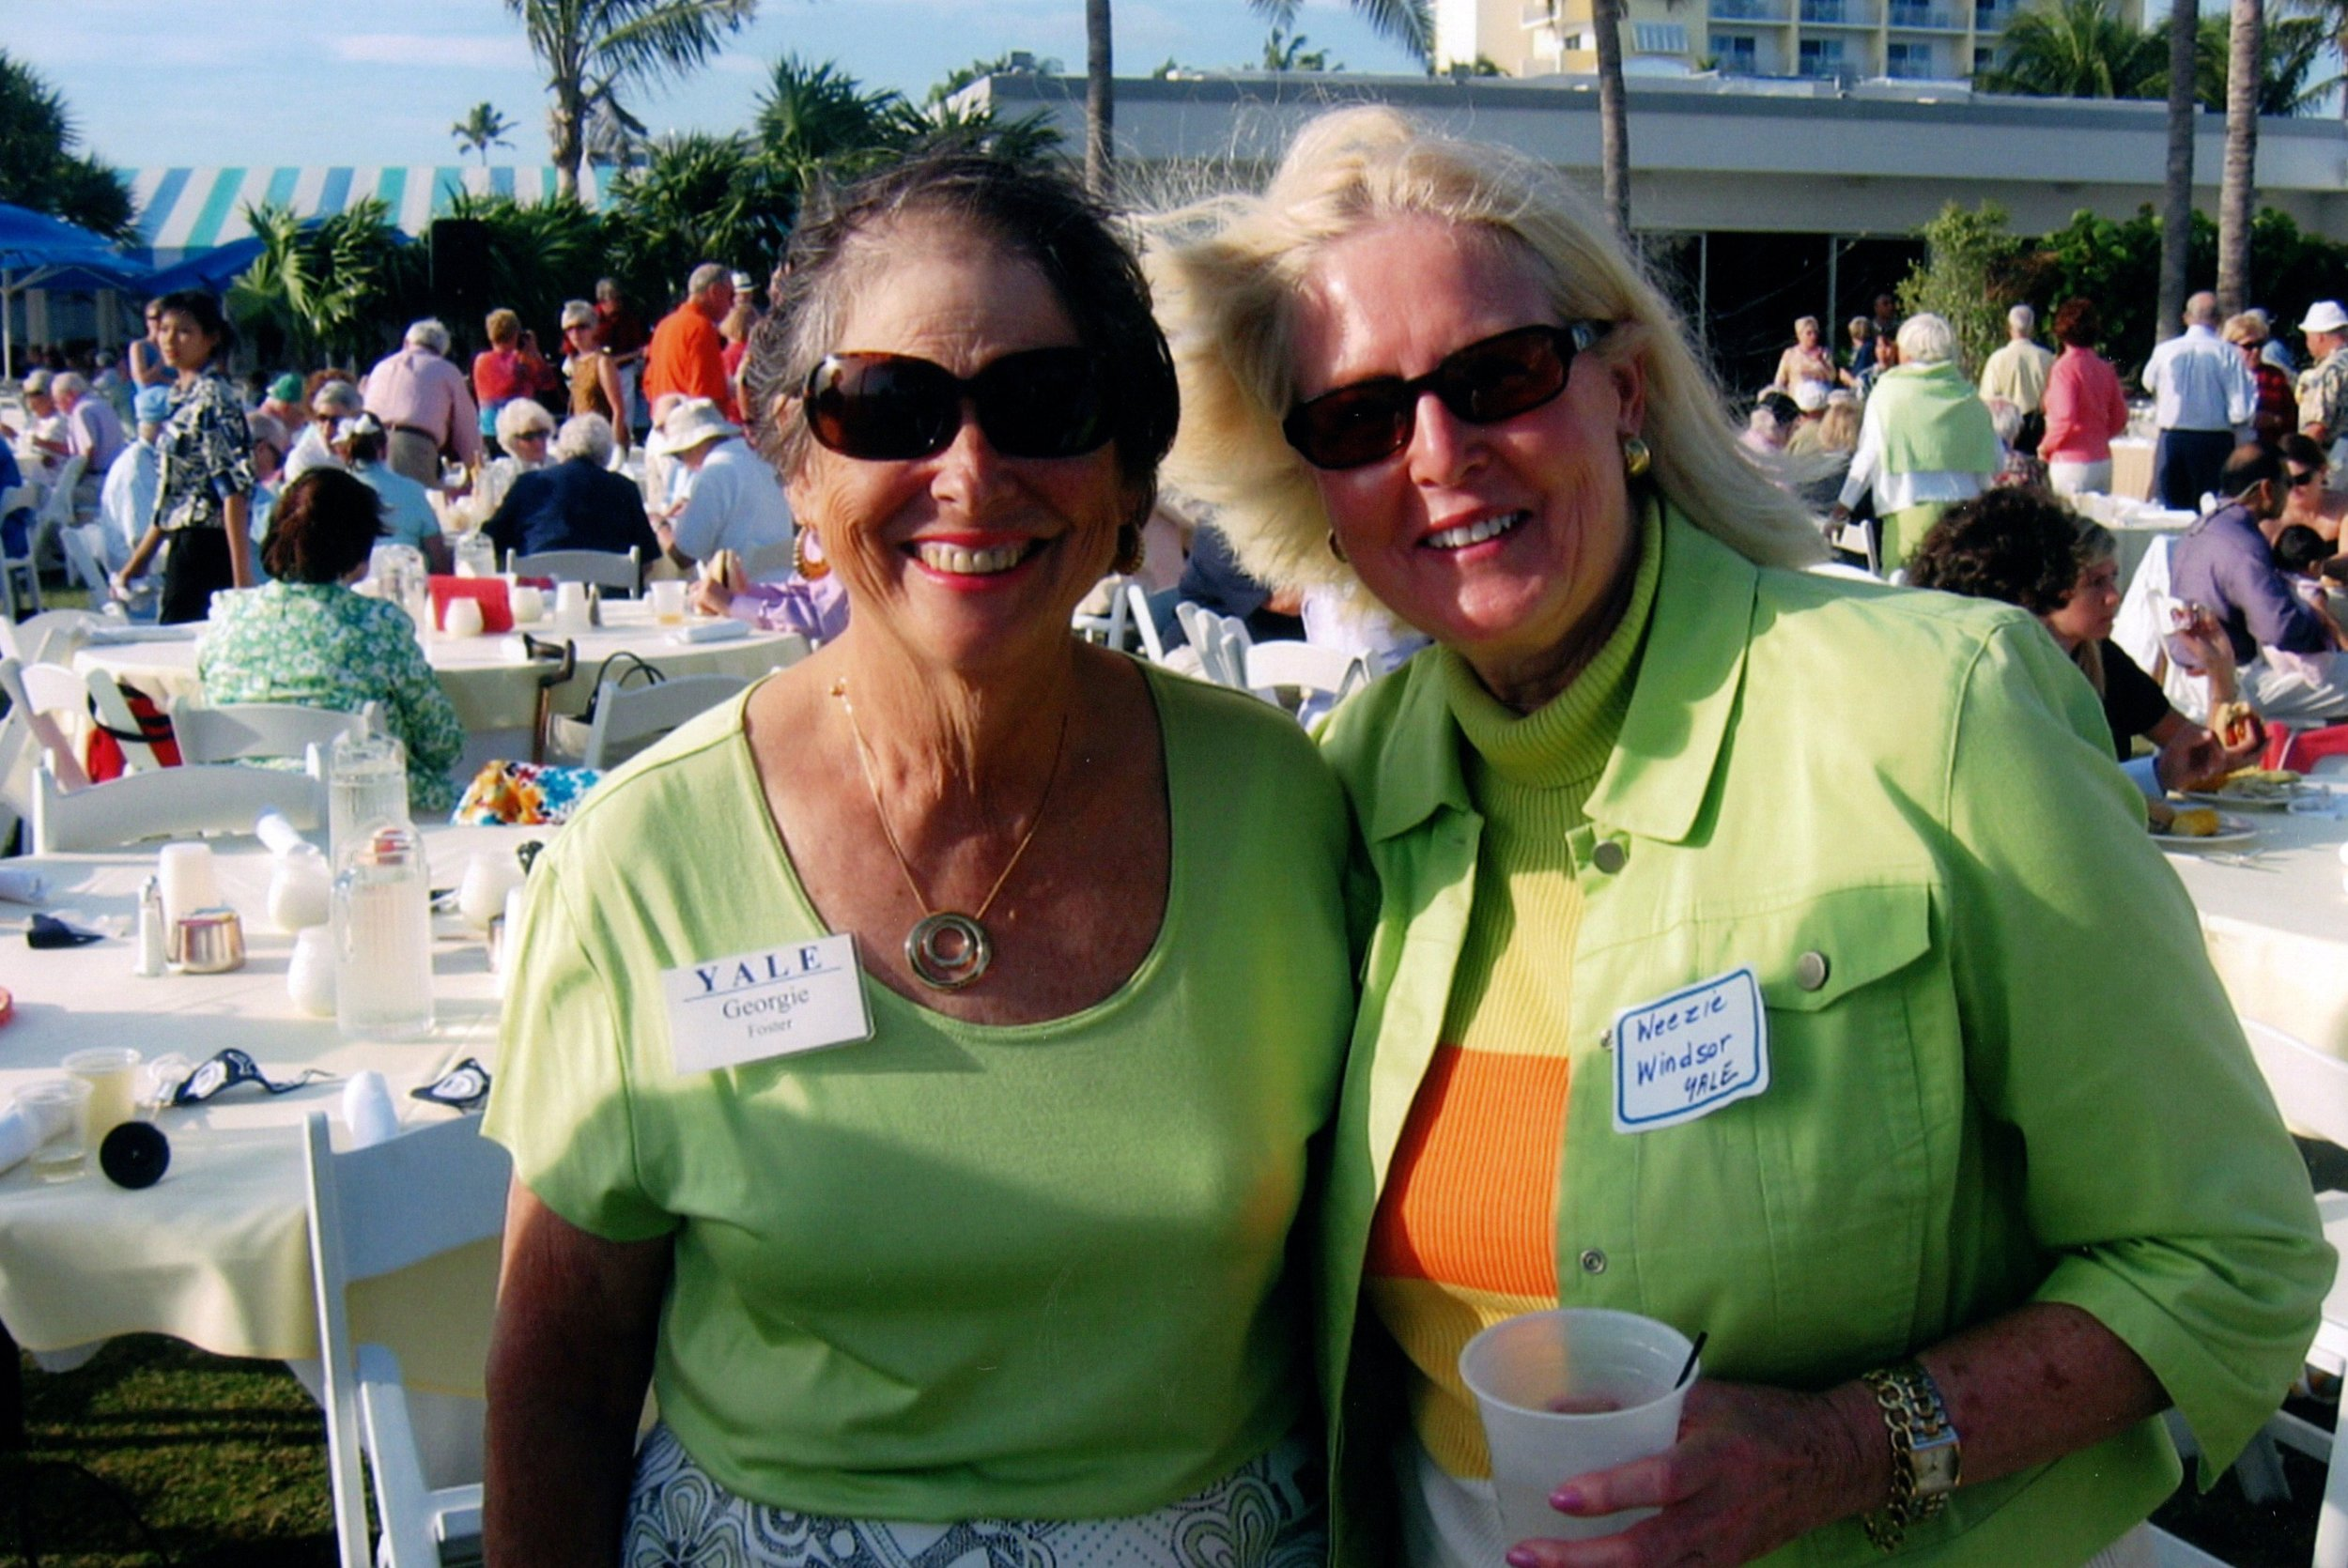 4_1_2007 - IVY LEAGUE PICNIC - NAPLES BEACH HOTEL 3.jpg